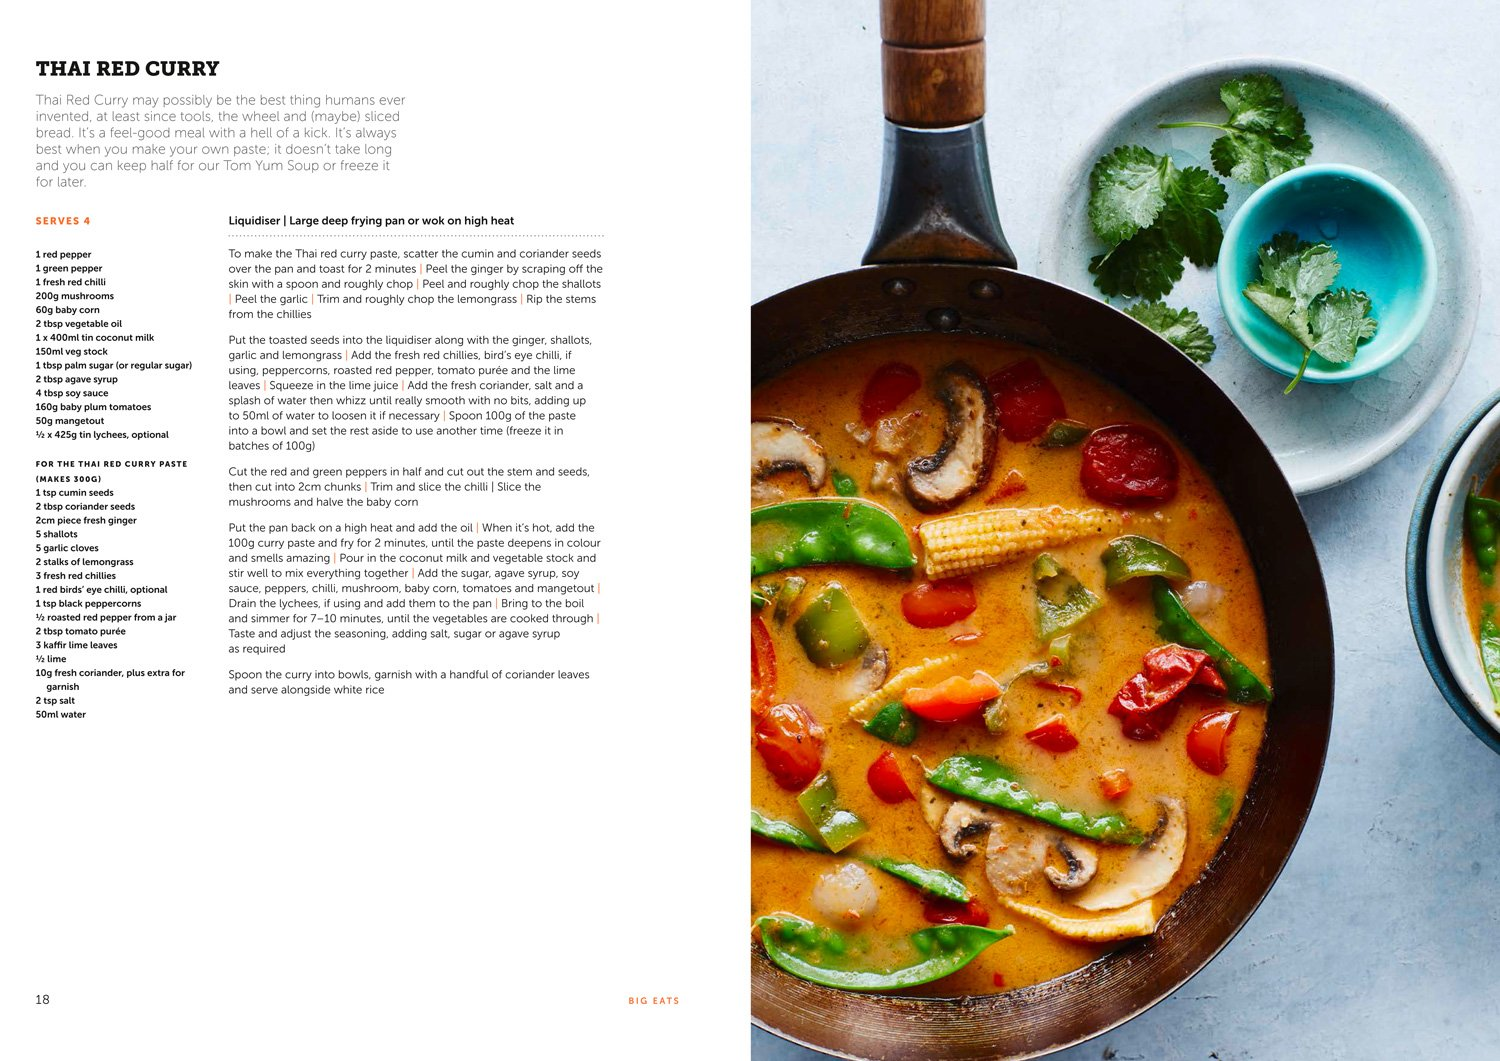 BOSH!: Simple recipes  Unbelievable results  All plants  The